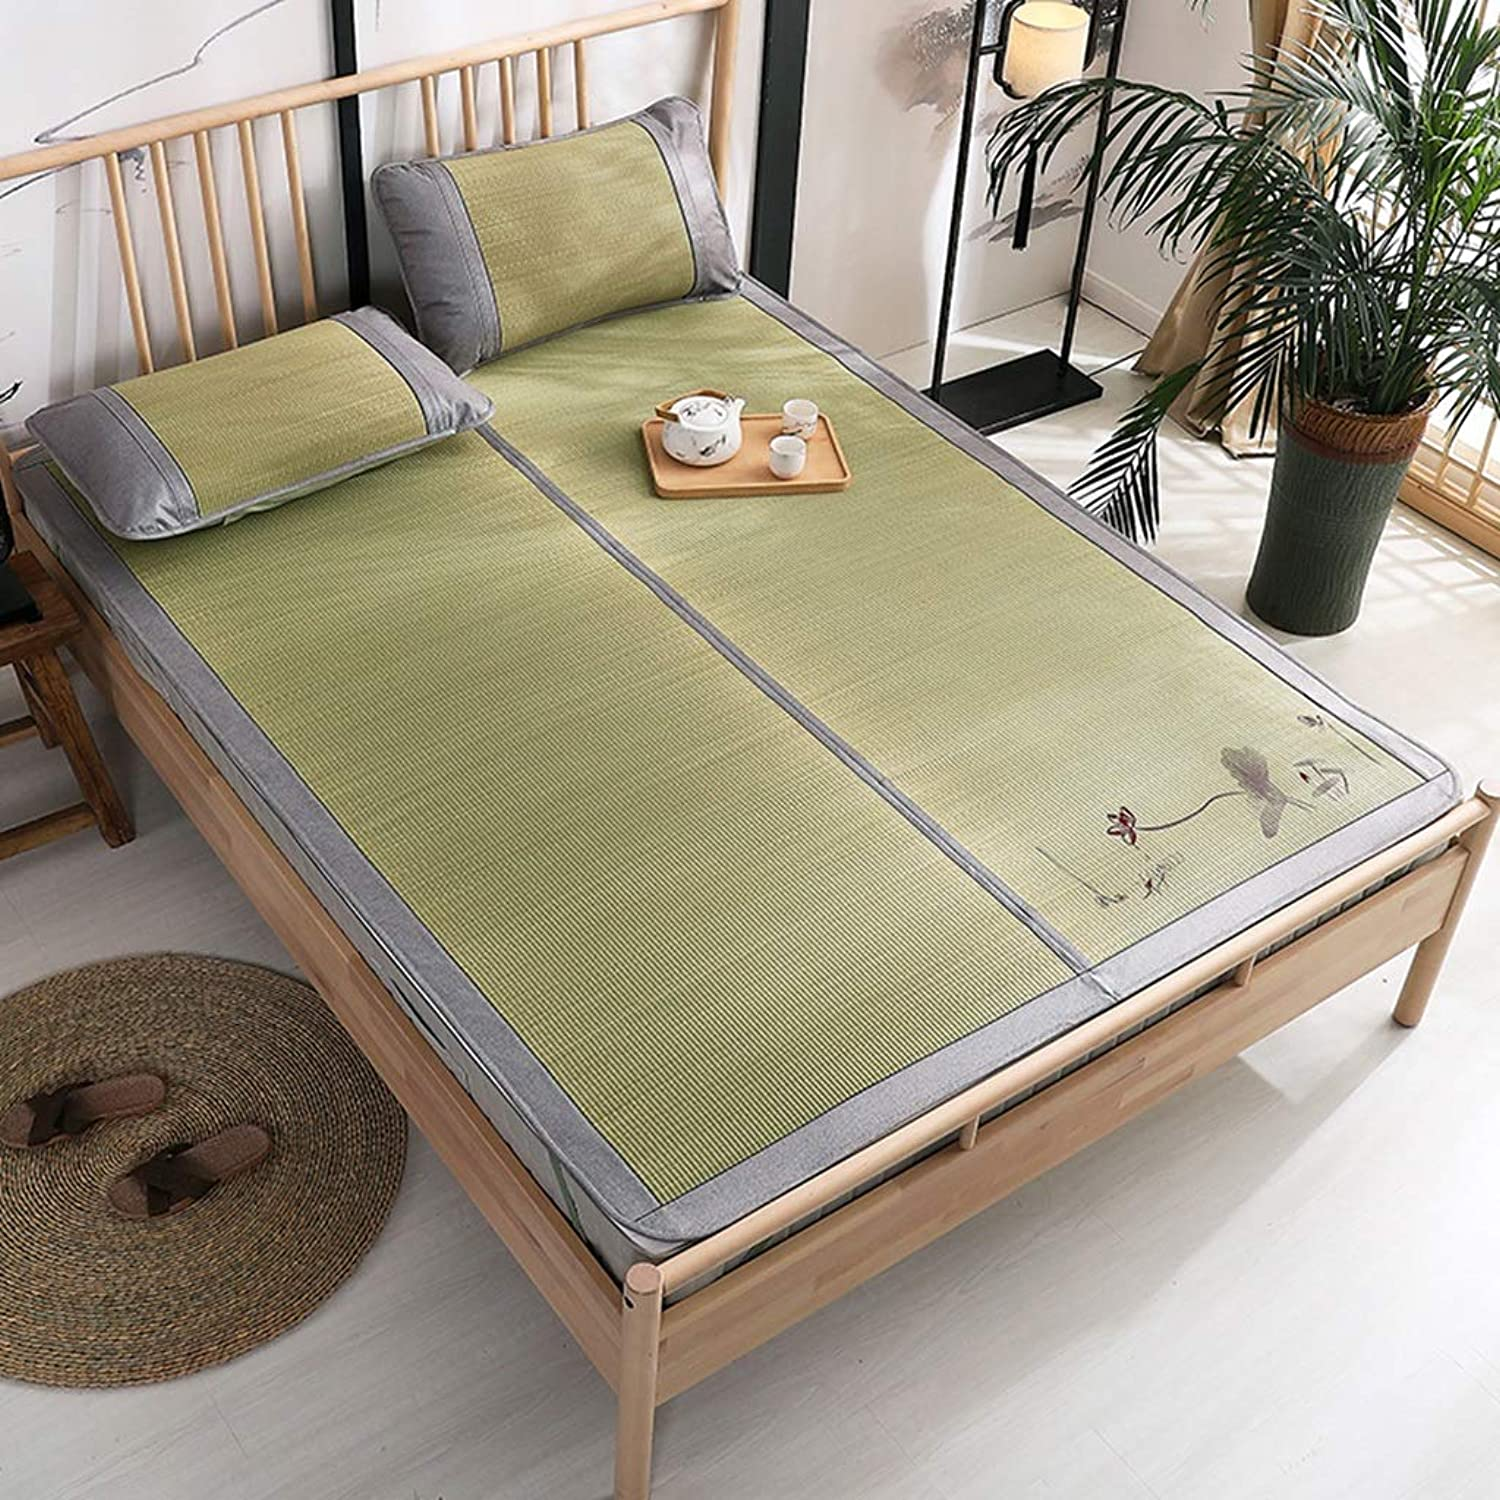 Three Sets of Grass Mats 1.5 Meters Bed Mat Embroidery Double 1.8 Meters Bed Natural Bamboo Mats (color   Green, Size   150  200cm)